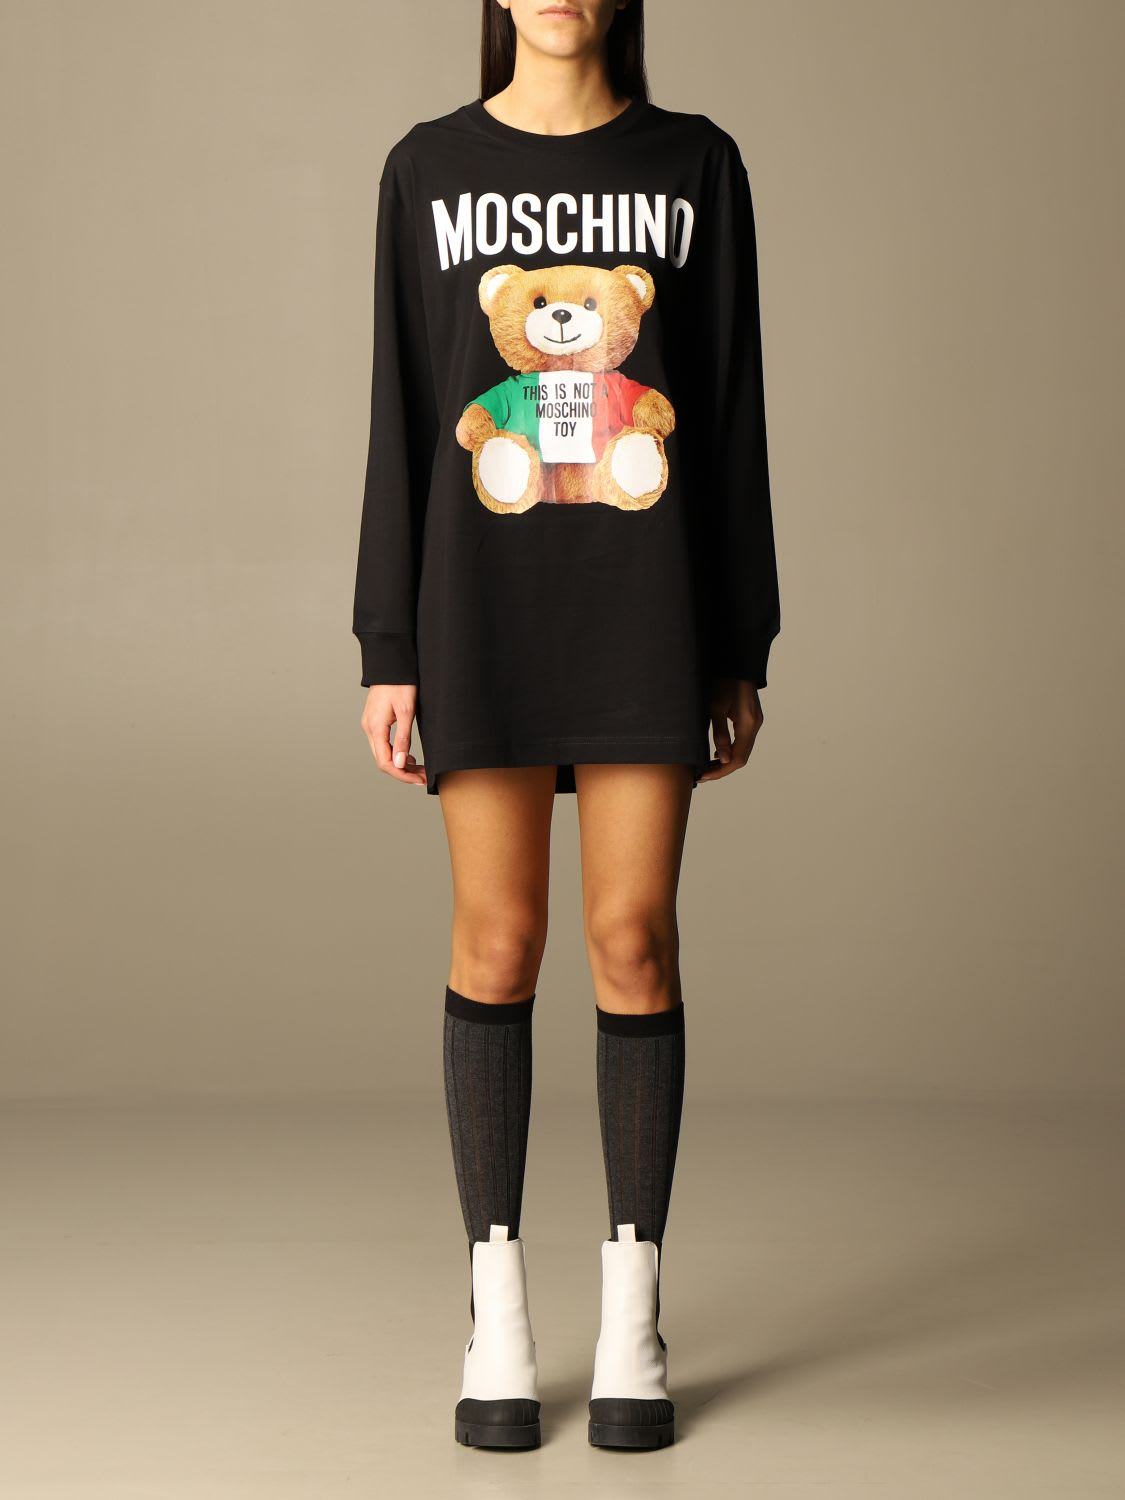 Moschino Couture Dress Moschino Couture Cotton Sweatshirt Dress With Teddy Print